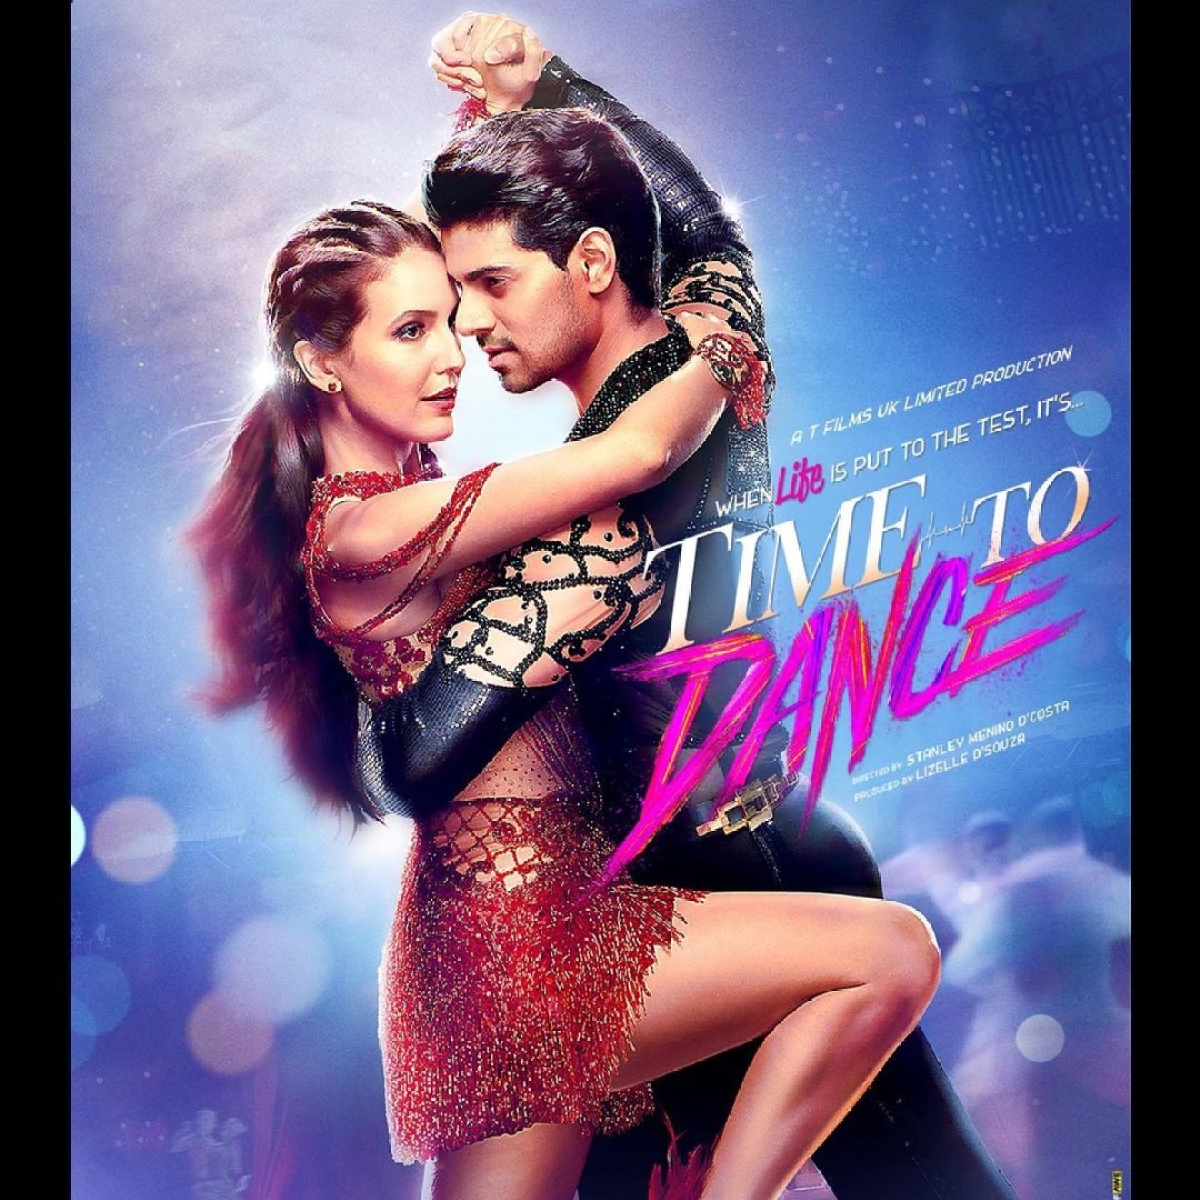 Time To Dance: Katrina Kaif's sister Isabelle's debut film to release on Netflix